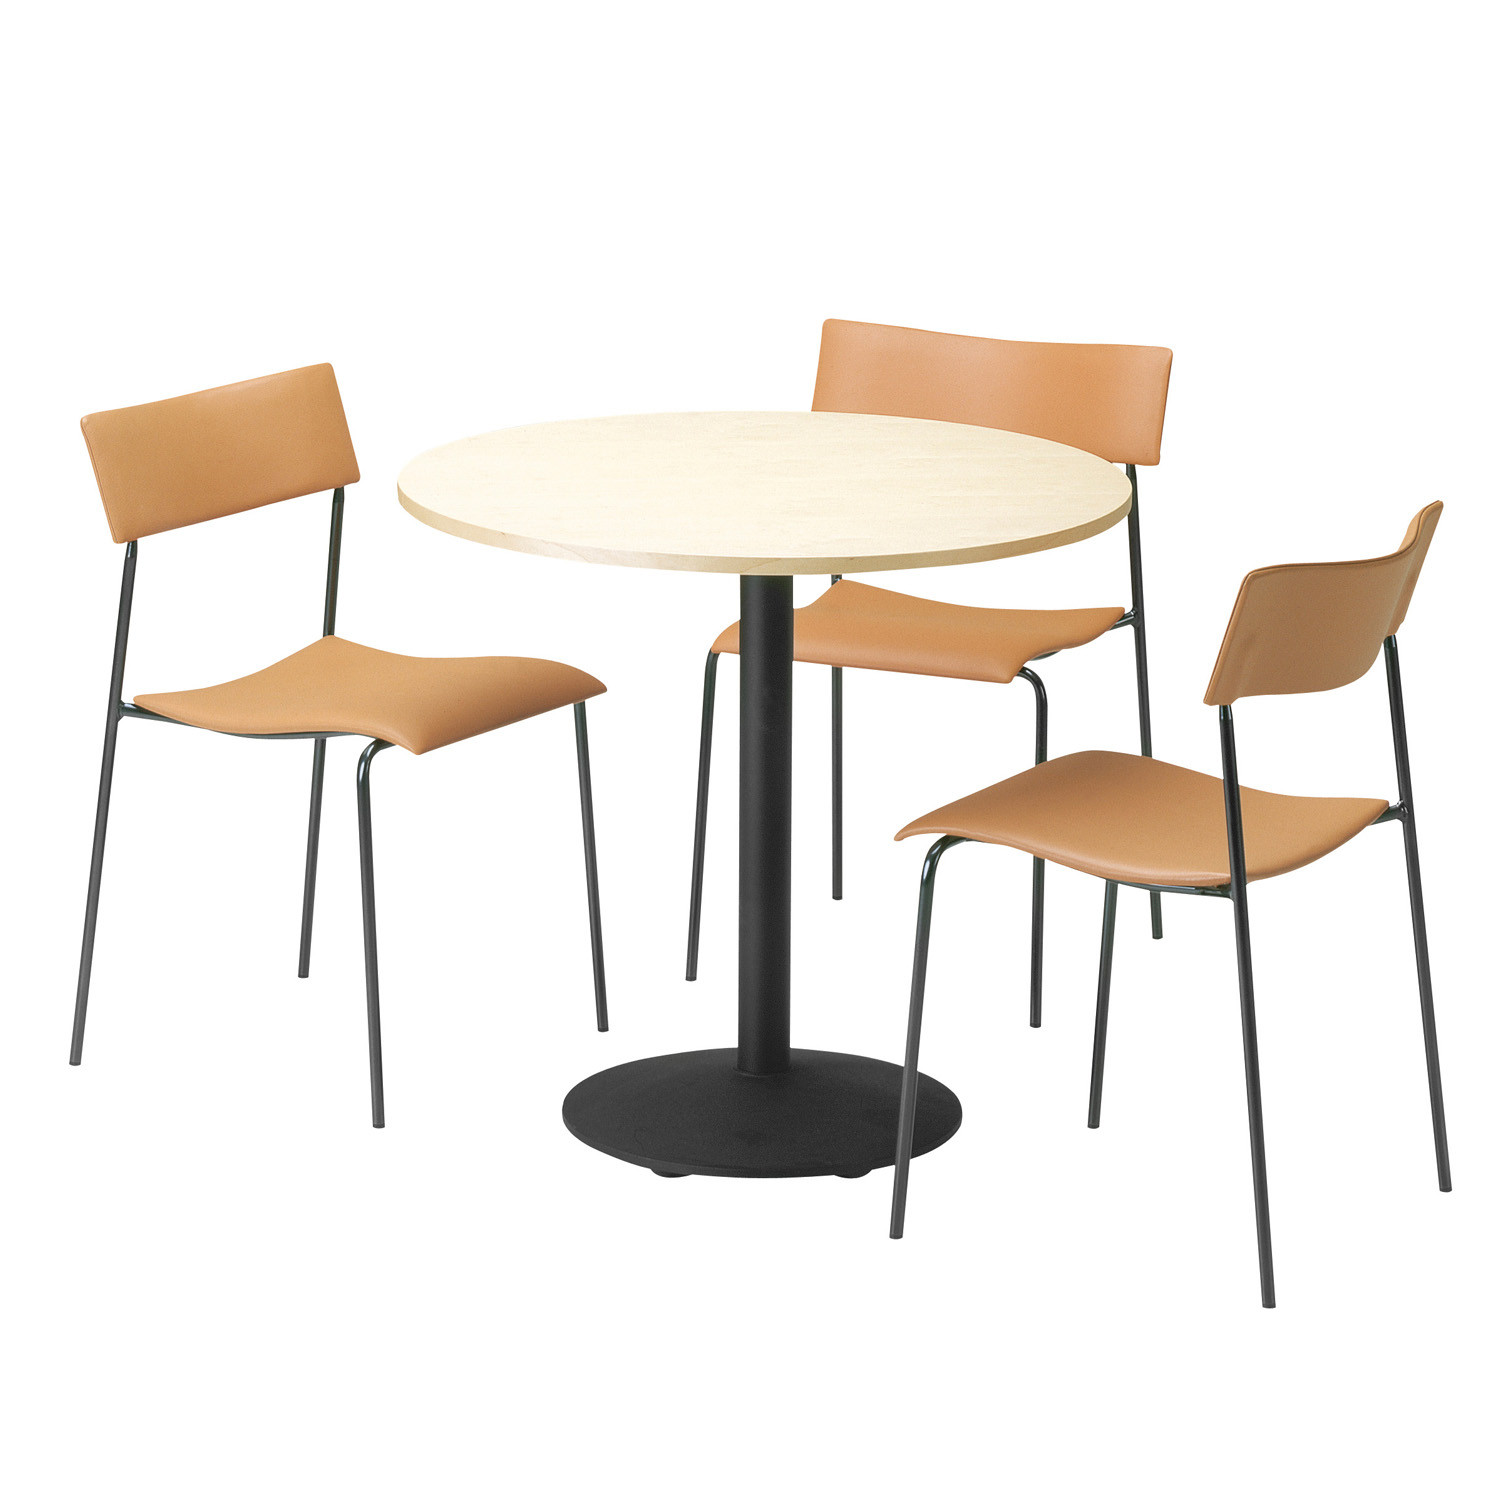 campus cafe table breakout furniture by lammhults apres furniture. Black Bedroom Furniture Sets. Home Design Ideas